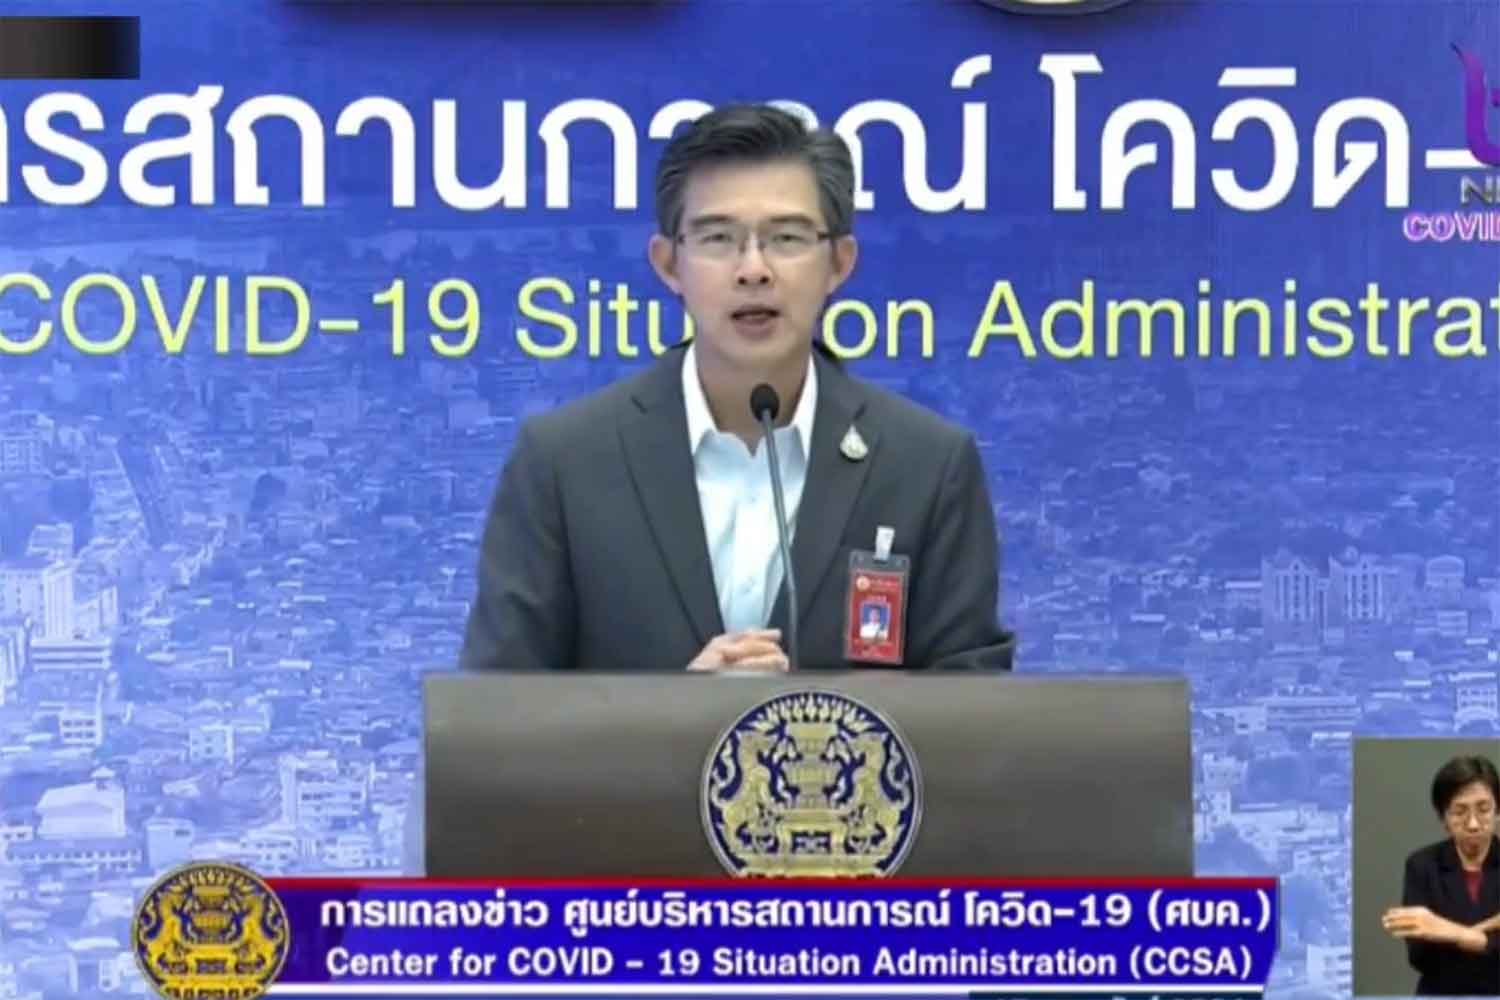 Taweesilp Visanuyothin, spokesman for the Centre for Covid-19 Situation Administration,  speaks of the implementation of villa quarantine for foreign visitors in Phuket, at Government House in Bangkok on Wednesday. (Screenshot)